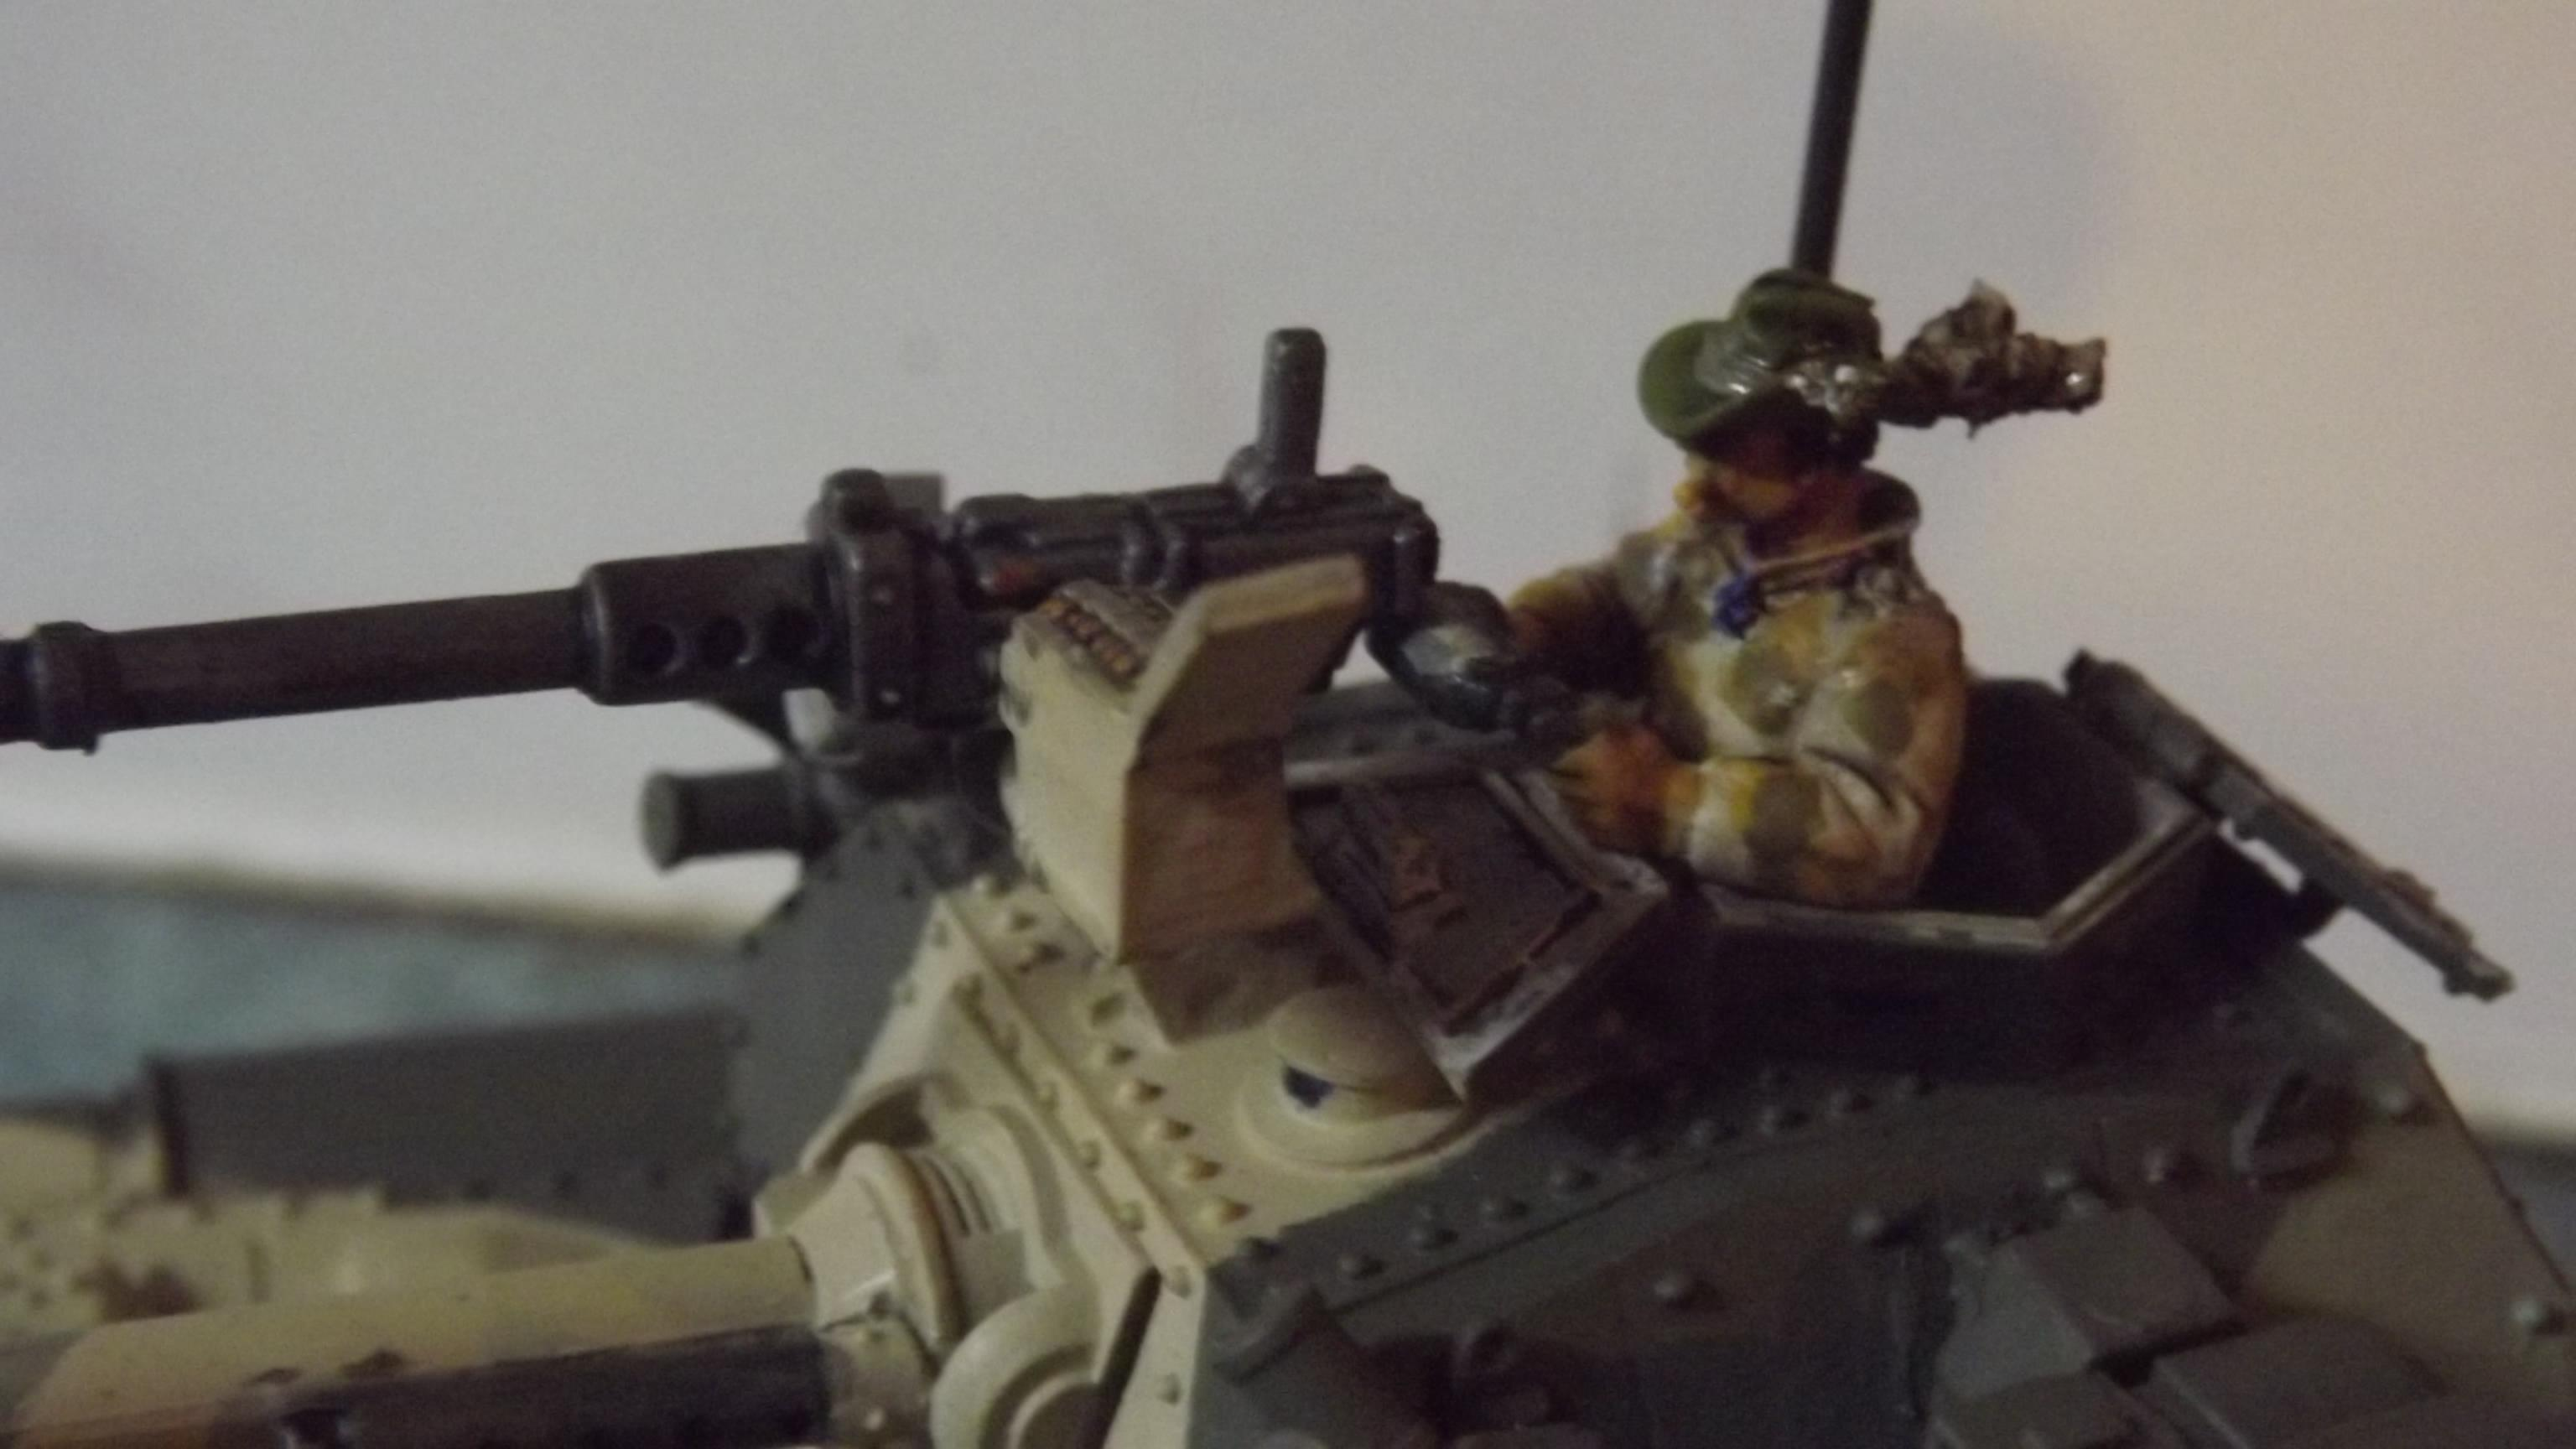 Chimera, Conqueror Cannon, Conversion, Ifv, Infantry Fighting Vehicle, Kangaroo, Shapeways, Transport, Victoria Miniatures